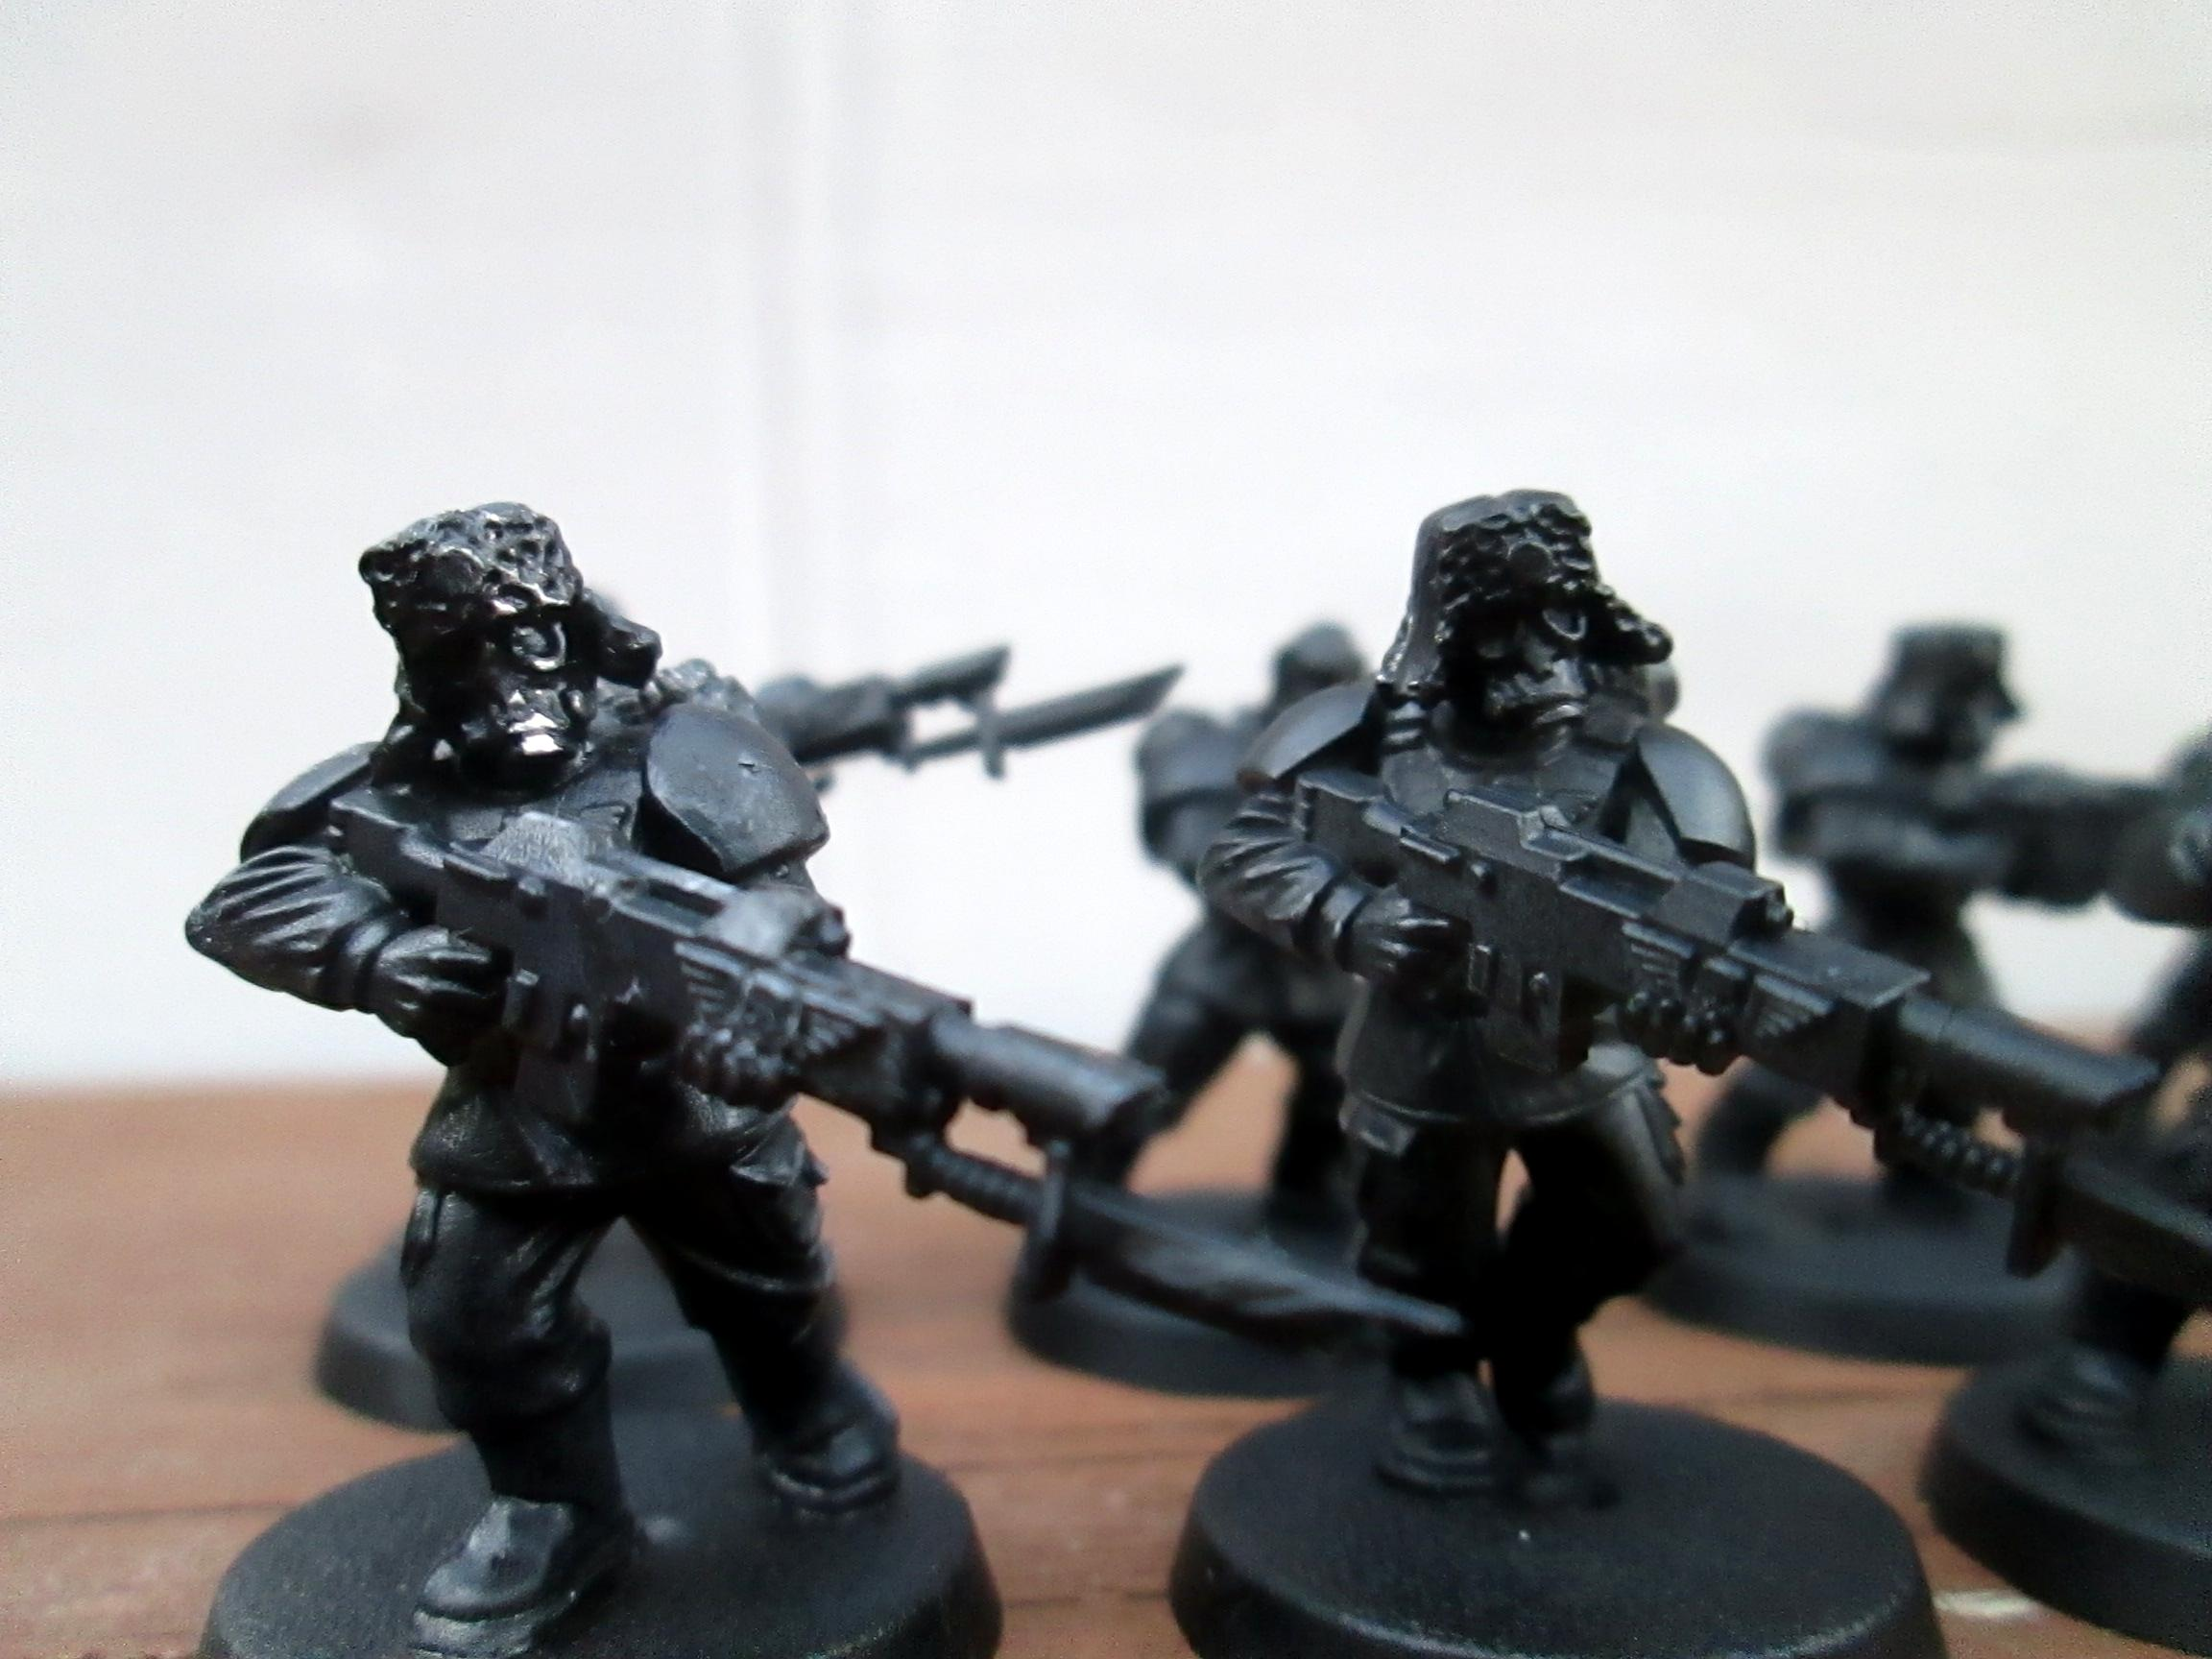 Cadians, Imperial Guard, Meatshield, Pig Iron, Regiment, Shock, Troops, Urban, Winter, Work In Progress